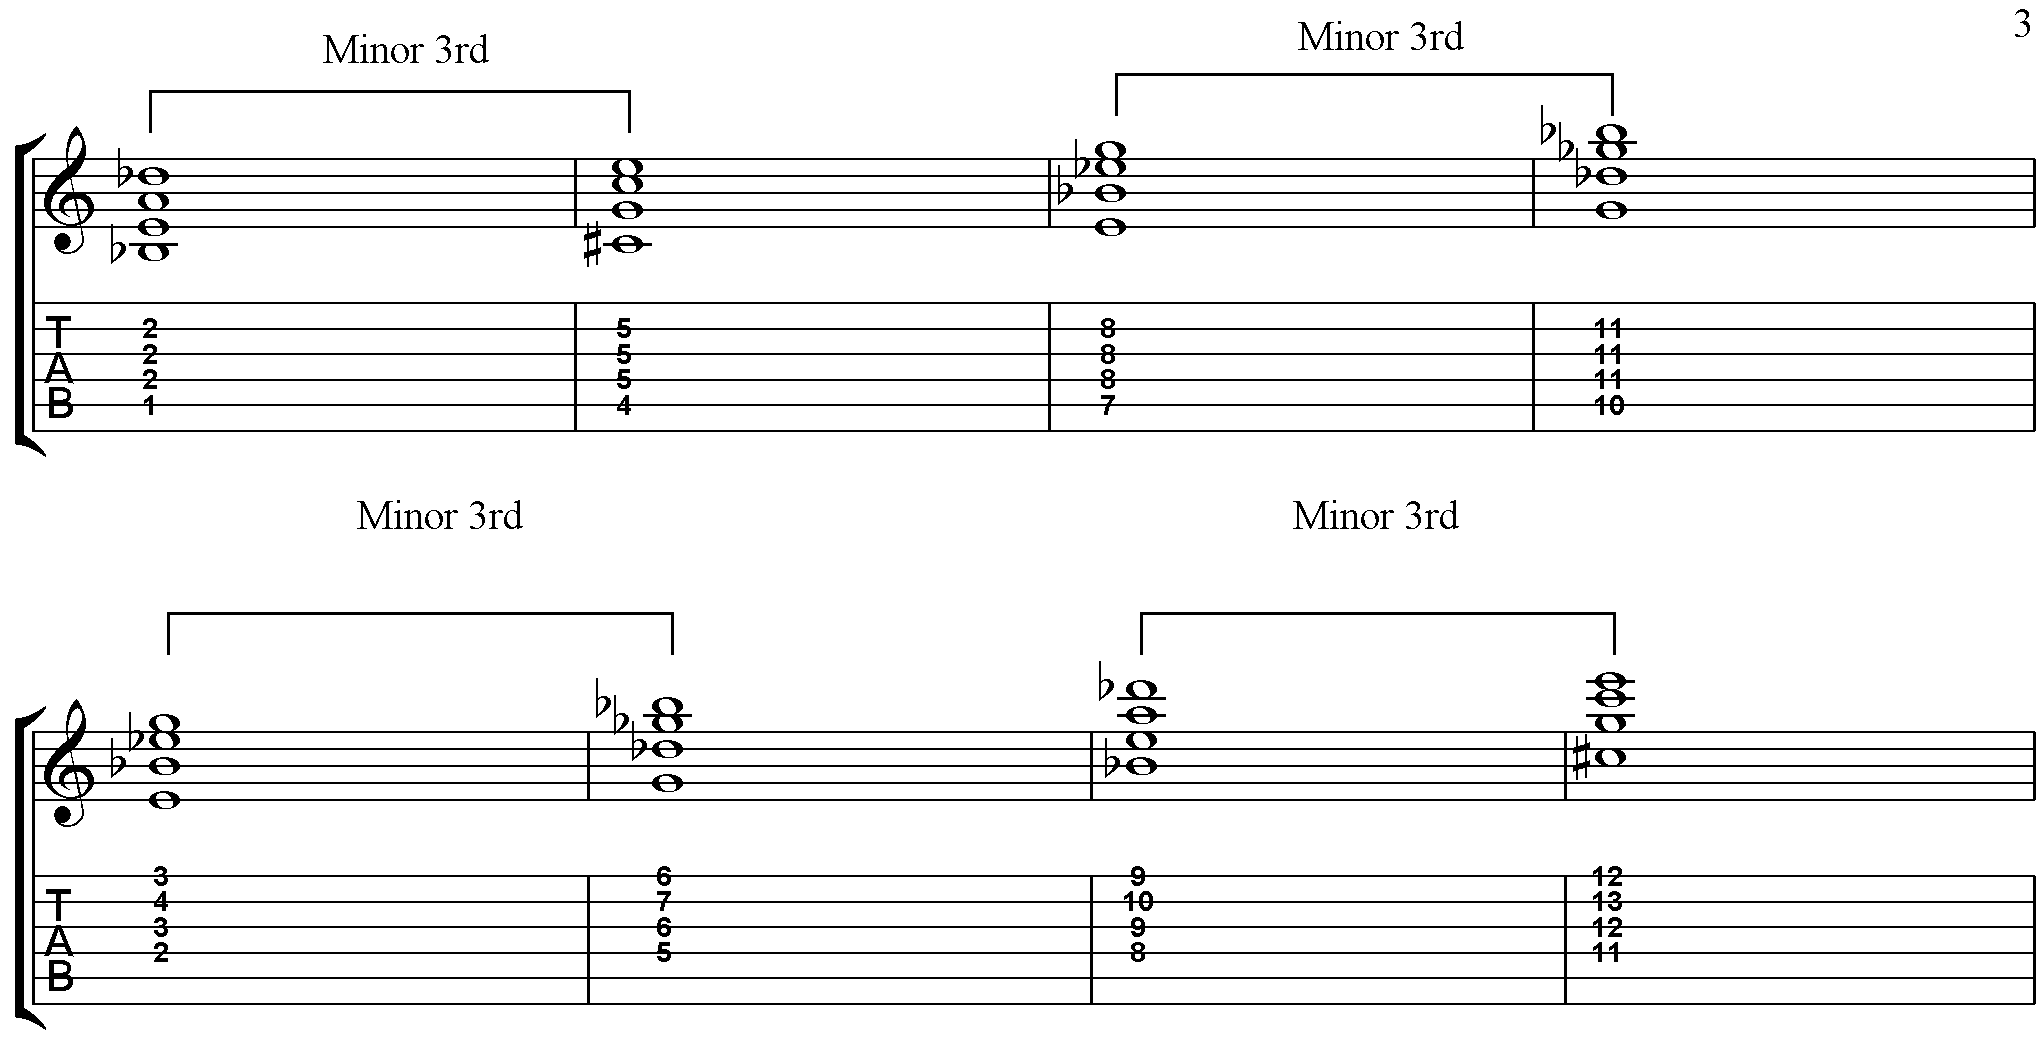 Double Your Dominant Chords Again With Altered Dominant Chords